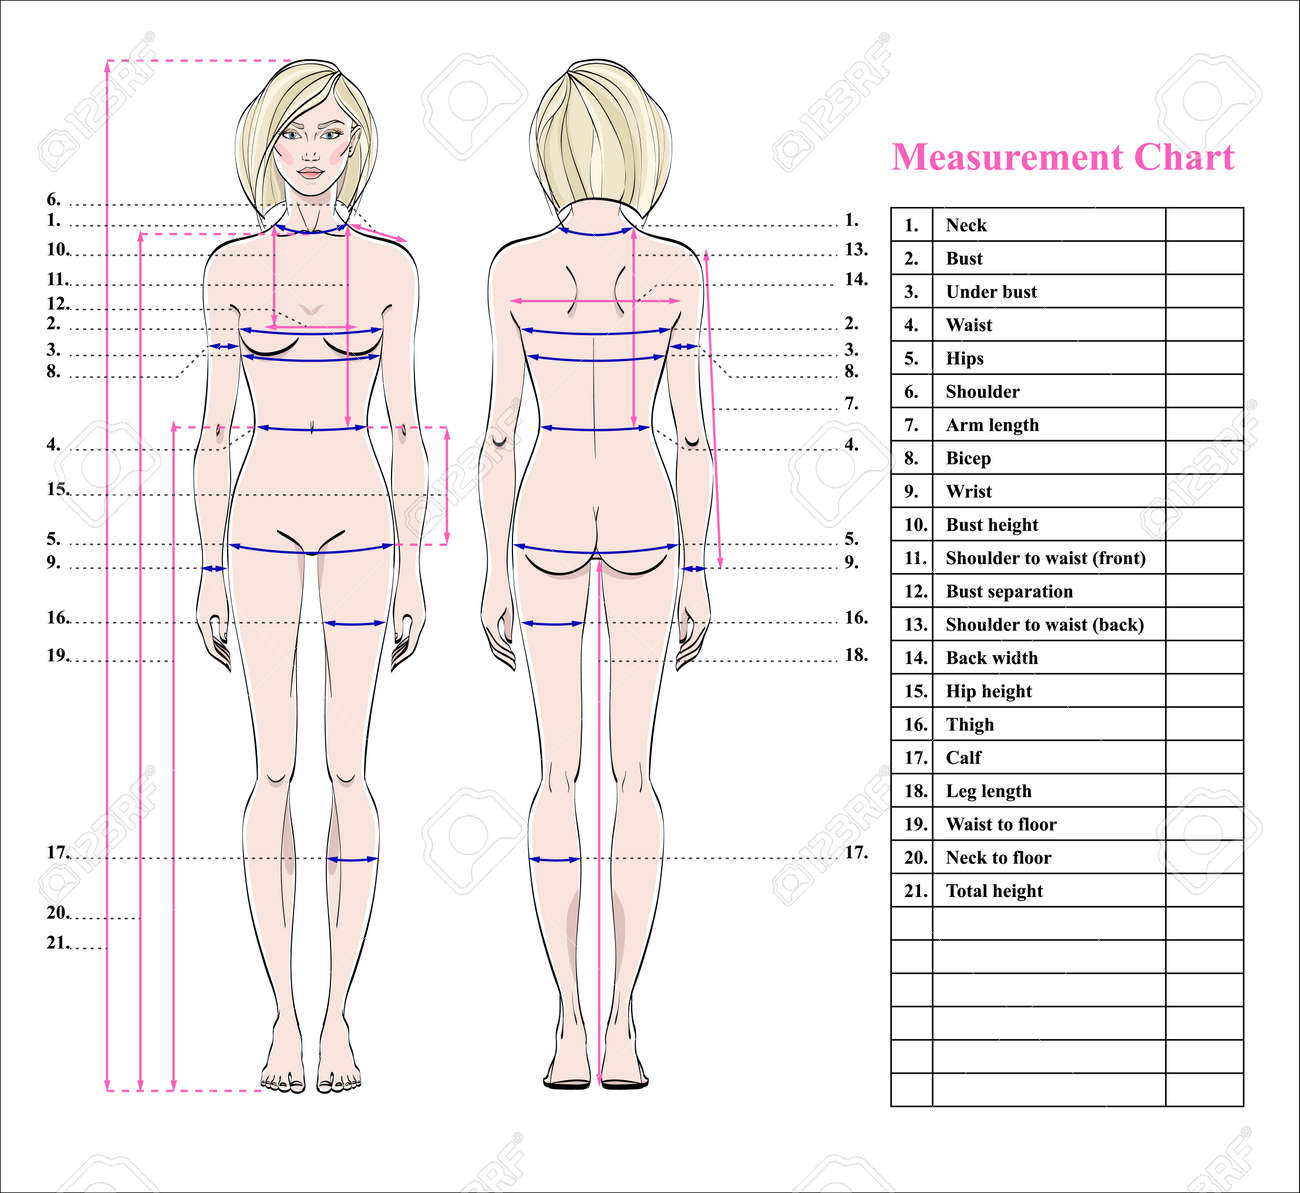 fitness measurement chart - Parfu kaptanband co